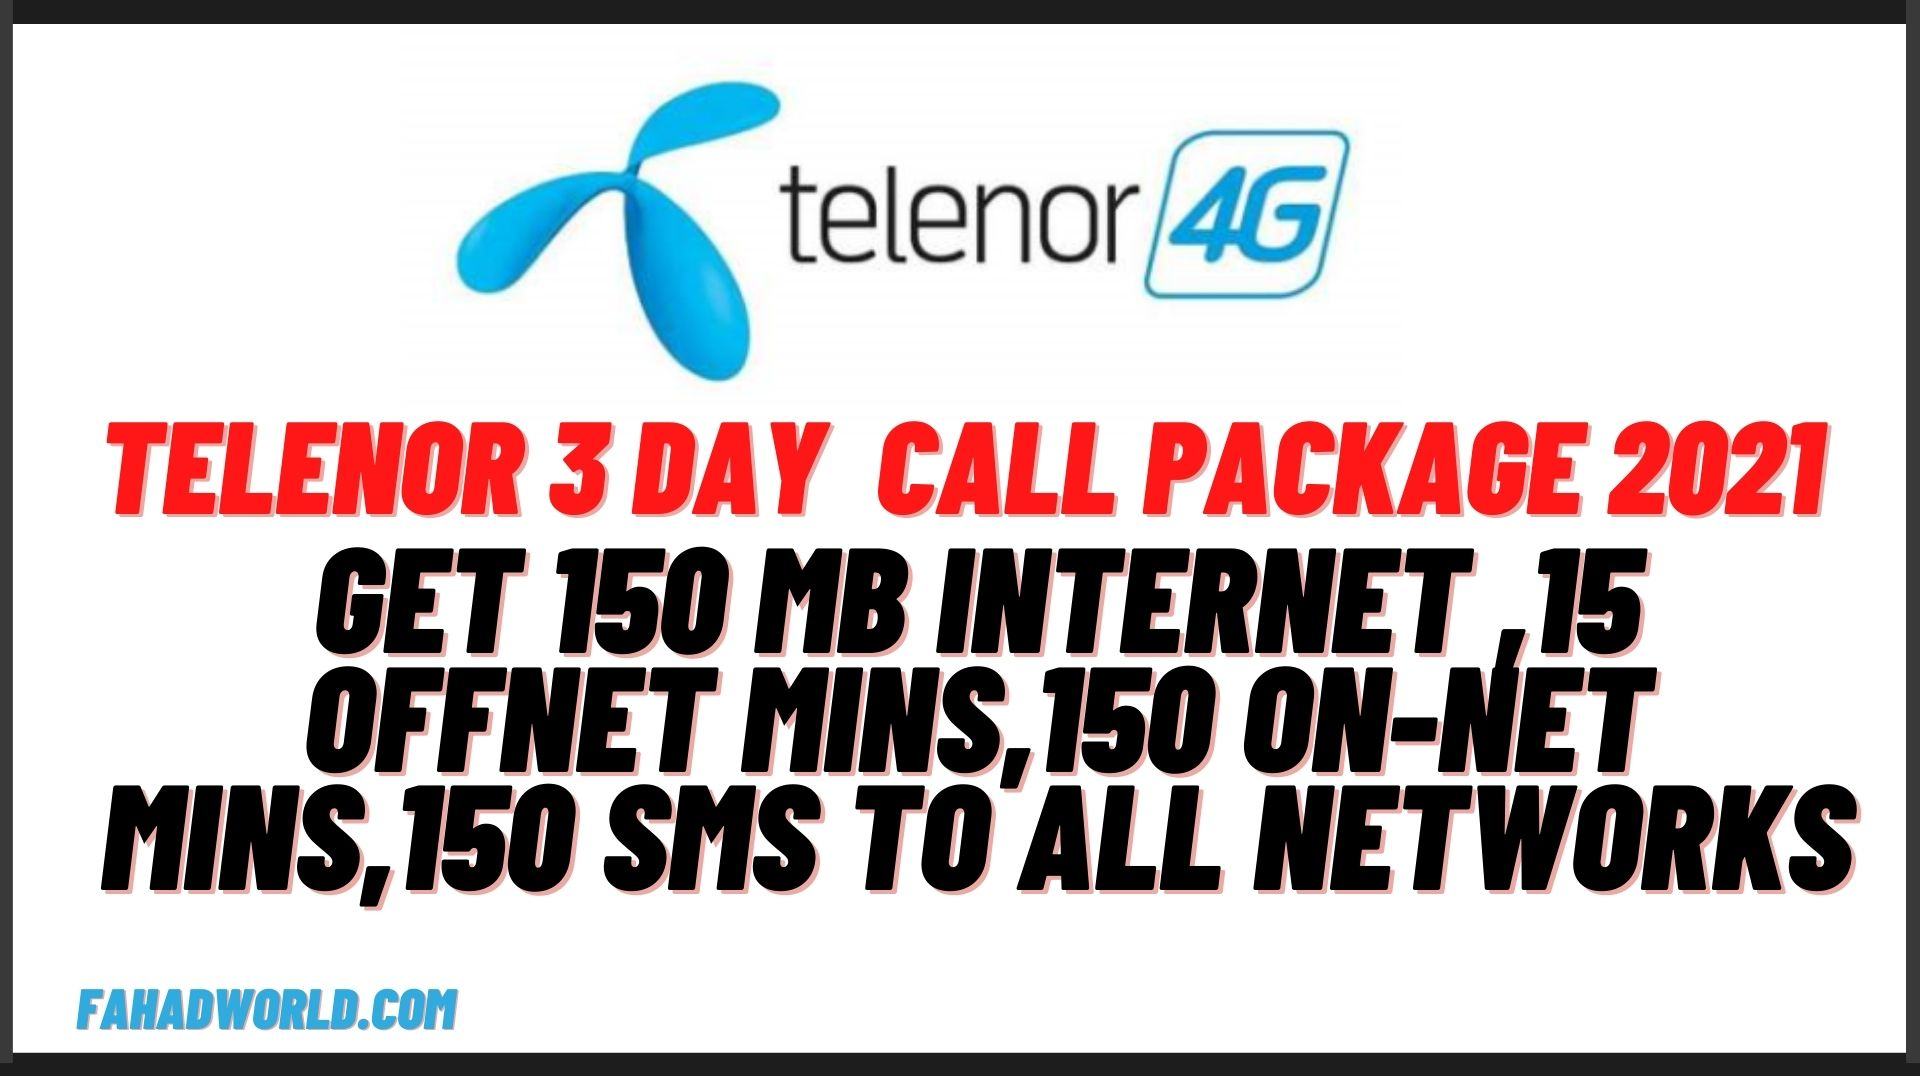 telenor 3 day call package code